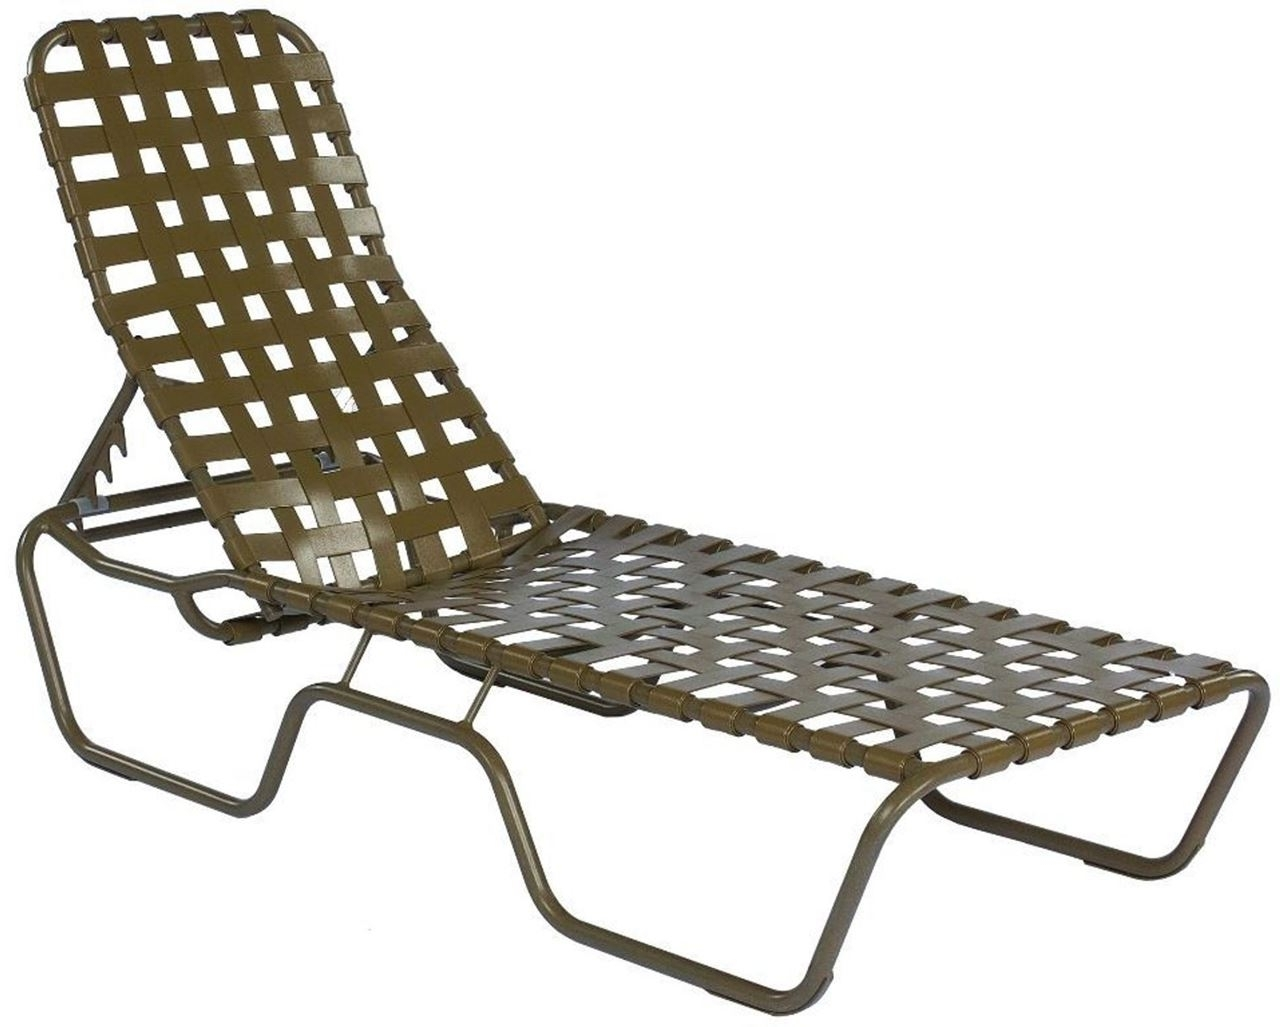 Commercial Basketweave Strap Chaise Lounge Sanibel Stacking Regarding Most Up To Date Commercial Outdoor Chaise Lounge Chairs (View 1 of 15)